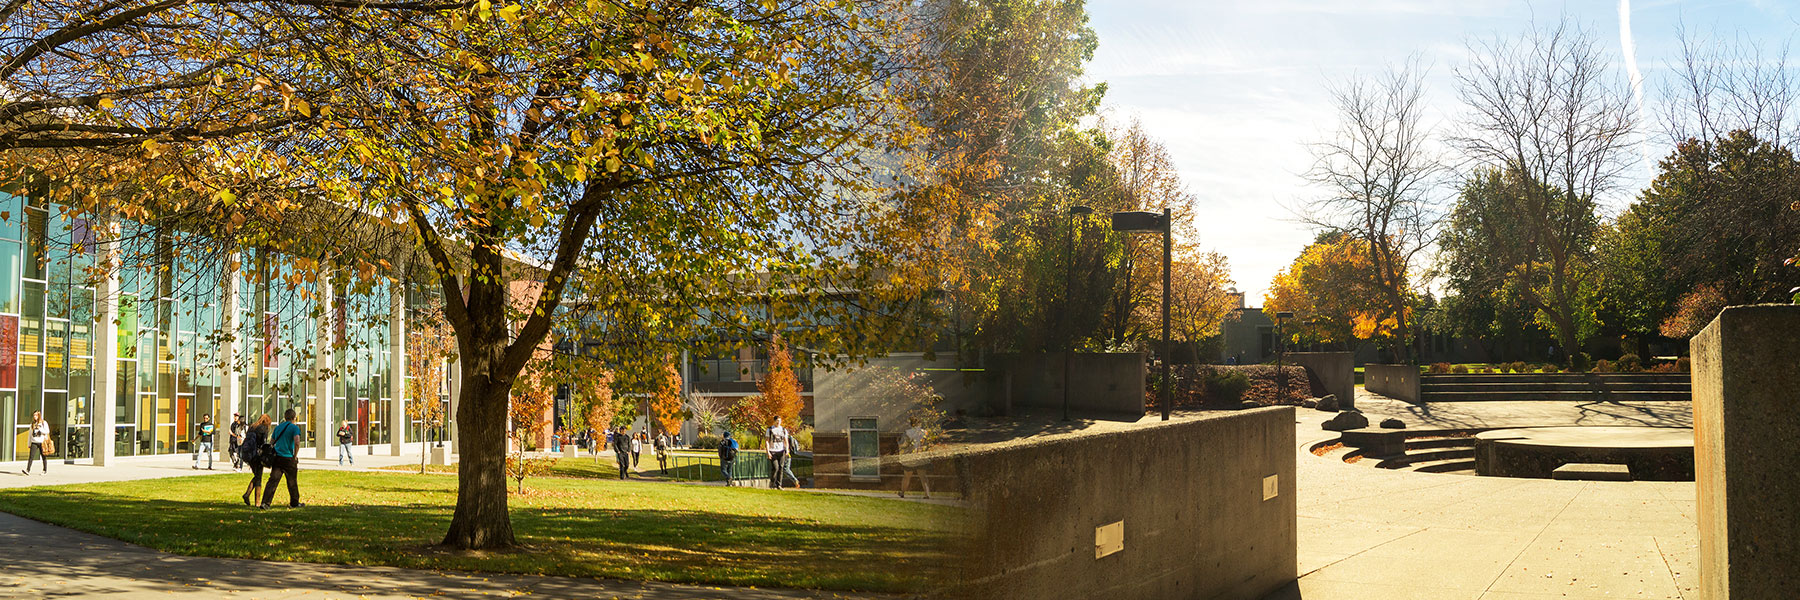 Outdoor shots of SFCC and SCC in fall, merging into one image.